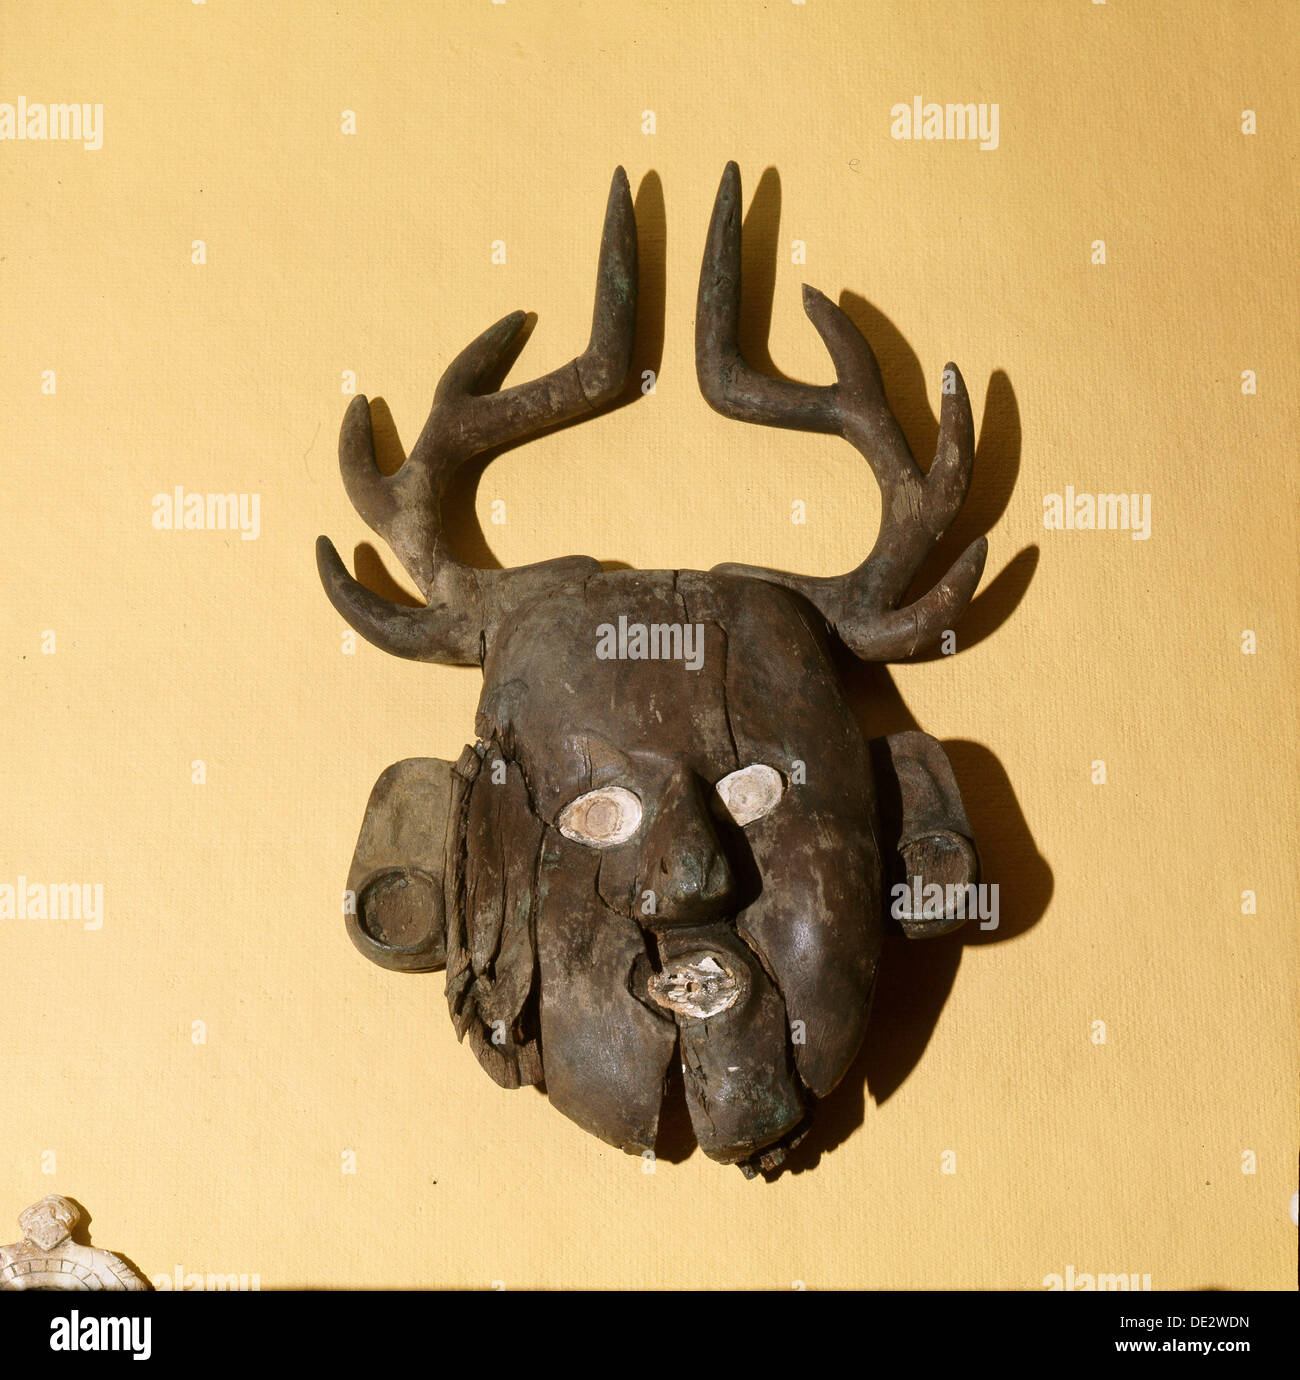 Mask with deer antlers Stock Photo: 60300177 - Alamy